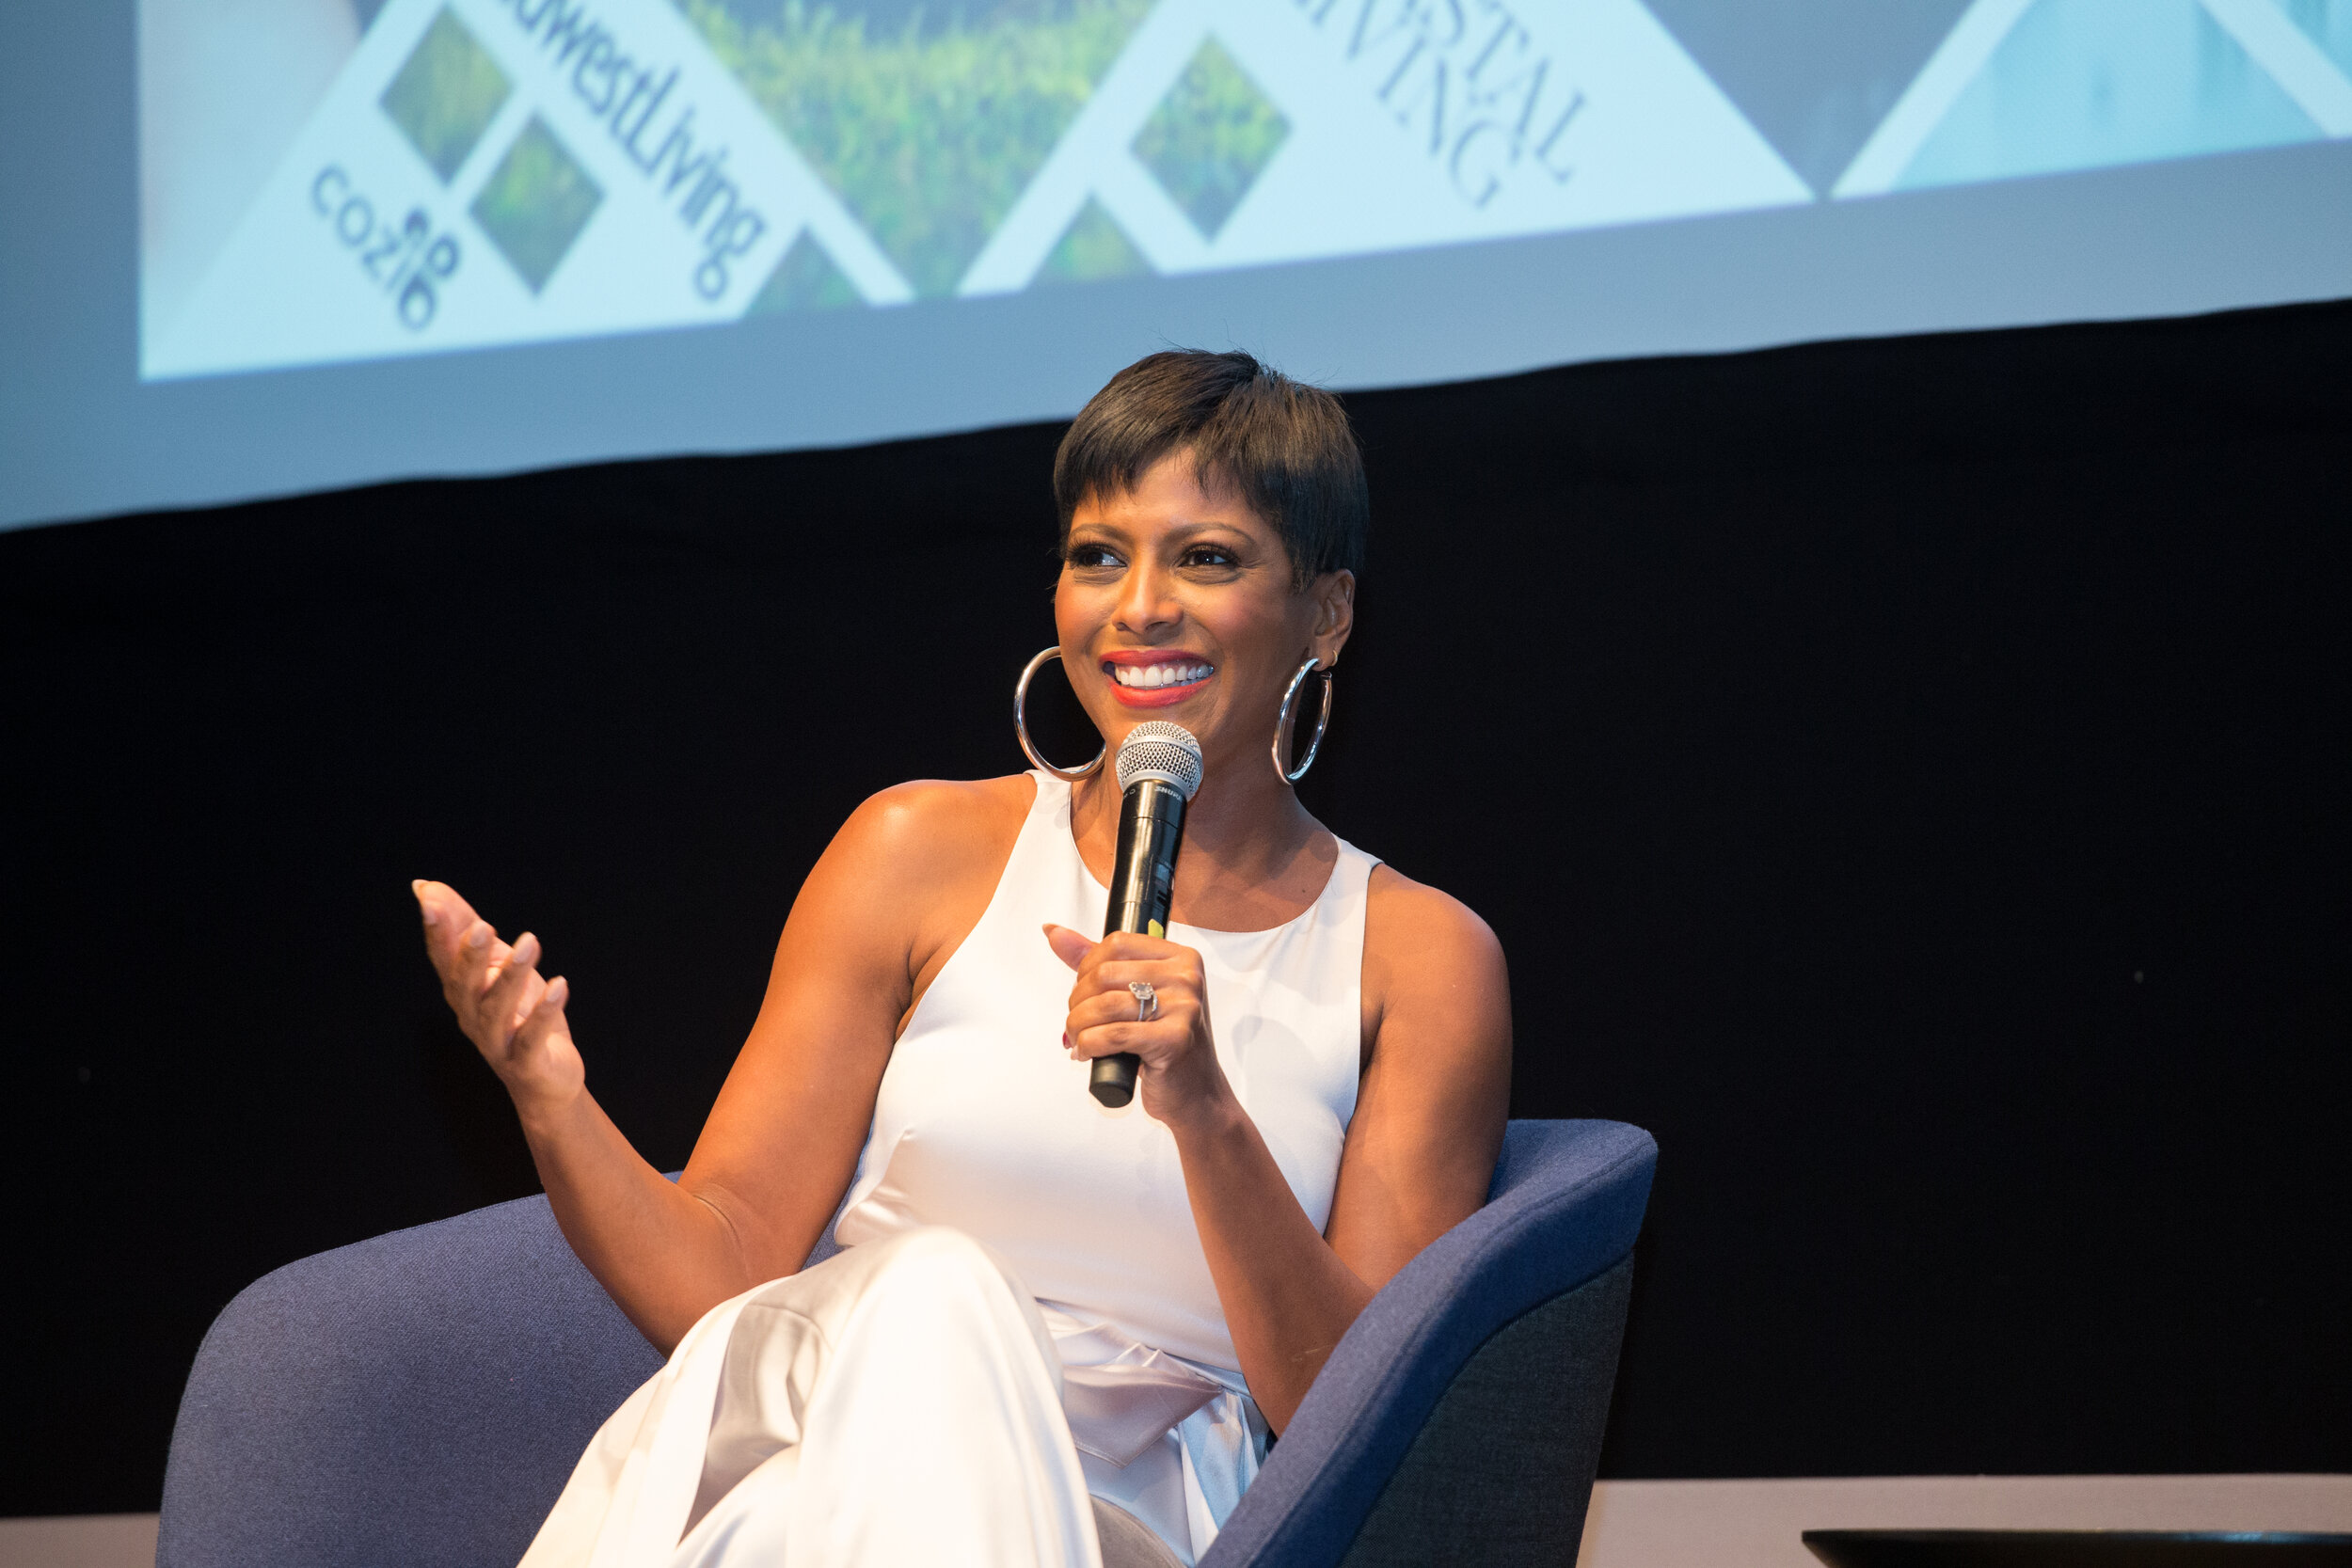 Tamron Hall is an American broadcast journalist and television talk show host. Ms. Hall was formerly a national news correspondent for NBC News, day-side anchor for MSNBC, host of the program MSNBC Live  with Tamron Hall,  and a co-host of Today's Take, the third hour of  Today.  She currently hosts  Deadline: Crime  on Investigation Discovery channel. In the summer of 2016, Investigation Discovery premiered a new special,  Guns on Campus: Tamron Hall Investigates , which commemorated the 50th anniversary of the tower shooting at the University of Texas at Austin. In September 2019, Hall debuted a self-titled syndicated talk show. I've watched her show this entire year but, it was amazing getting to see her in person and hearing her story. I don't personally know her but, I am proud of her and everything she has accomplished this year!